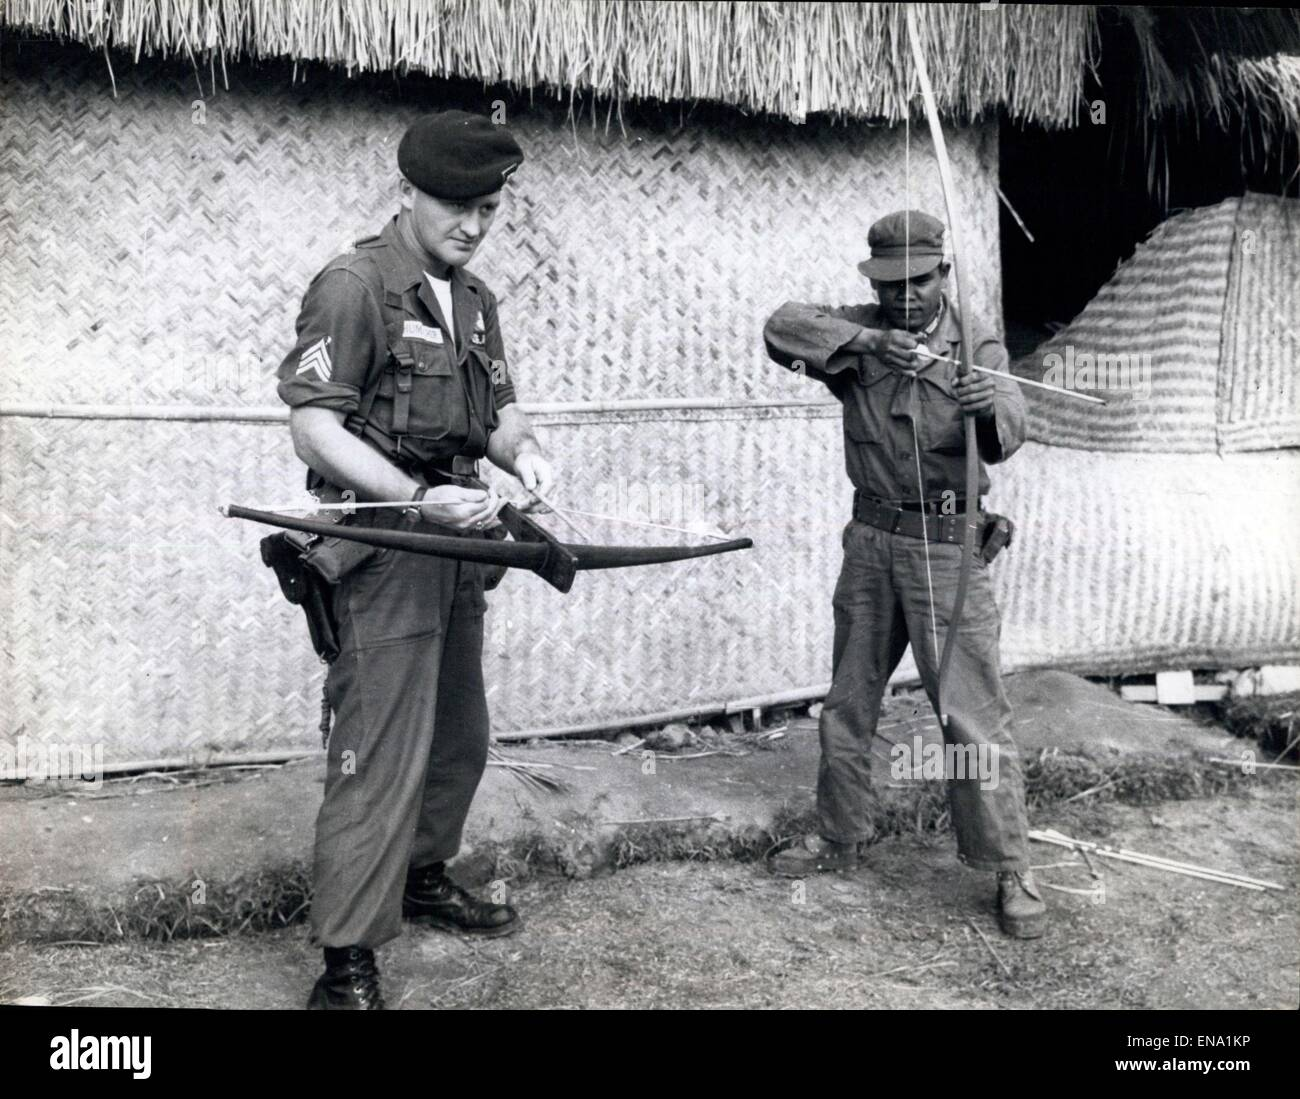 the vietnam war or second indochina war essay Vietnam war summary: summary of the vietnam war: the vietnam war is the commonly used name for the second indochina war, 1954–1975 usually it refers to the period when the united states and other members of the seato (southeast asia treaty organization) joined the forces with the republic of south vietnam to contest communist forces, comprised of south vietnamese guerrillas and regular.